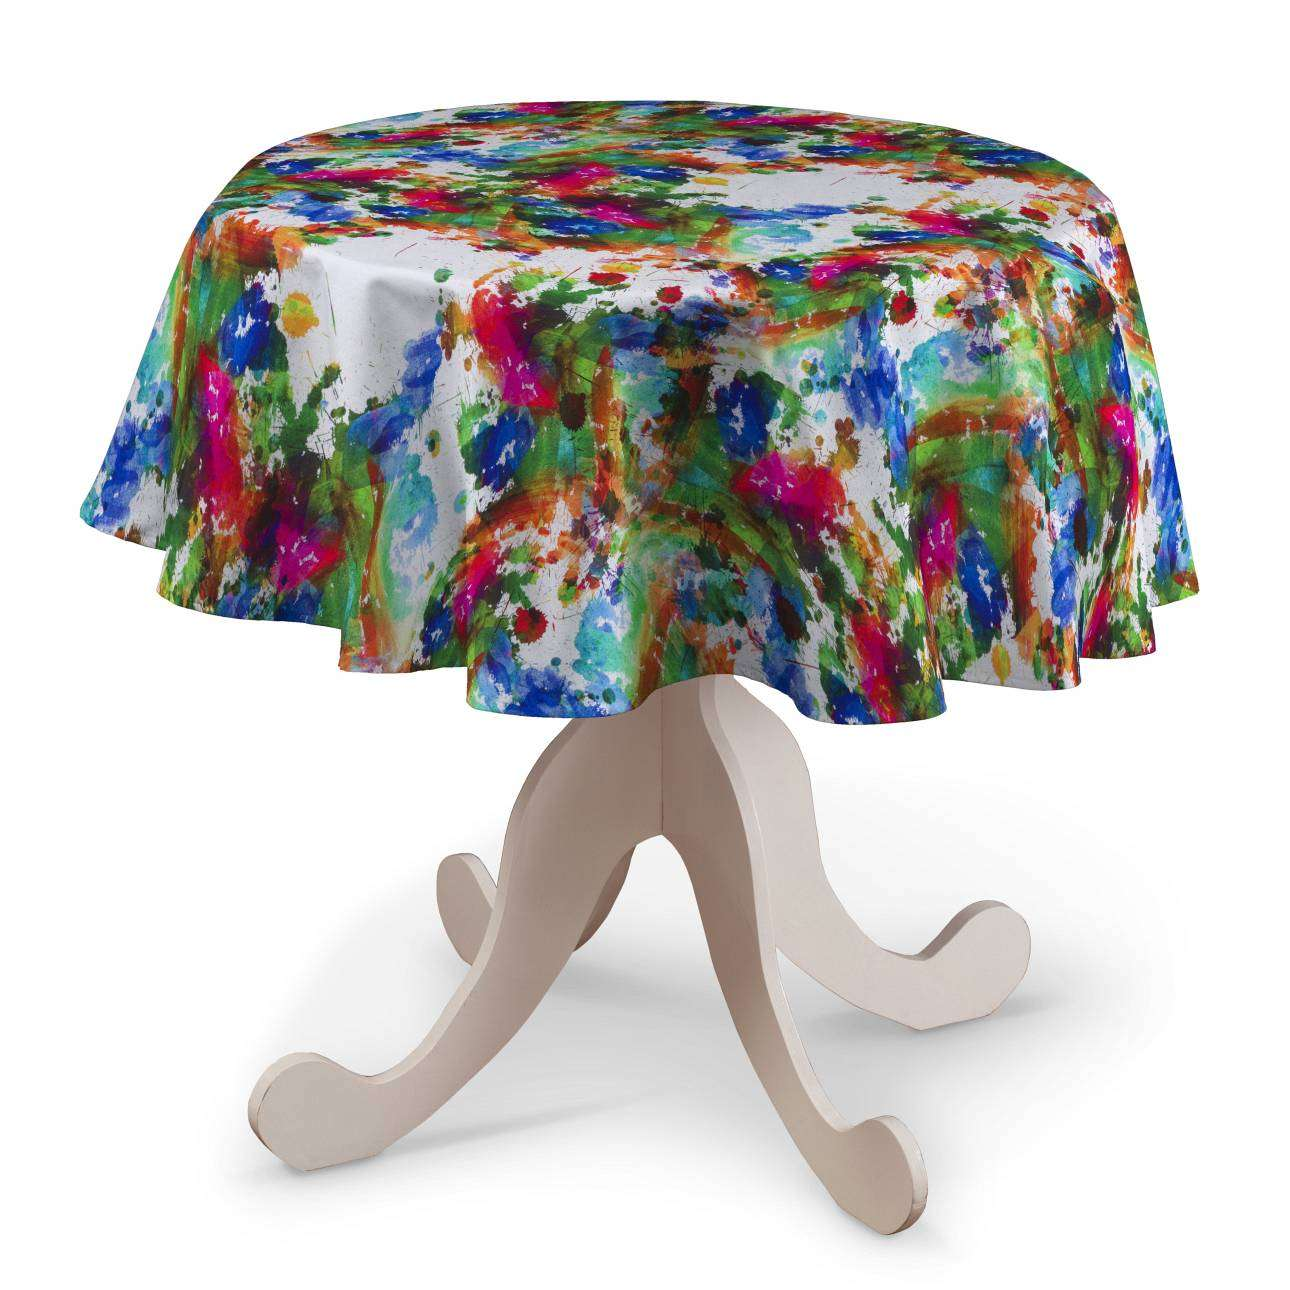 Round tablecloth Ø 135 cm (53 inch) in collection New Art, fabric: 140-23